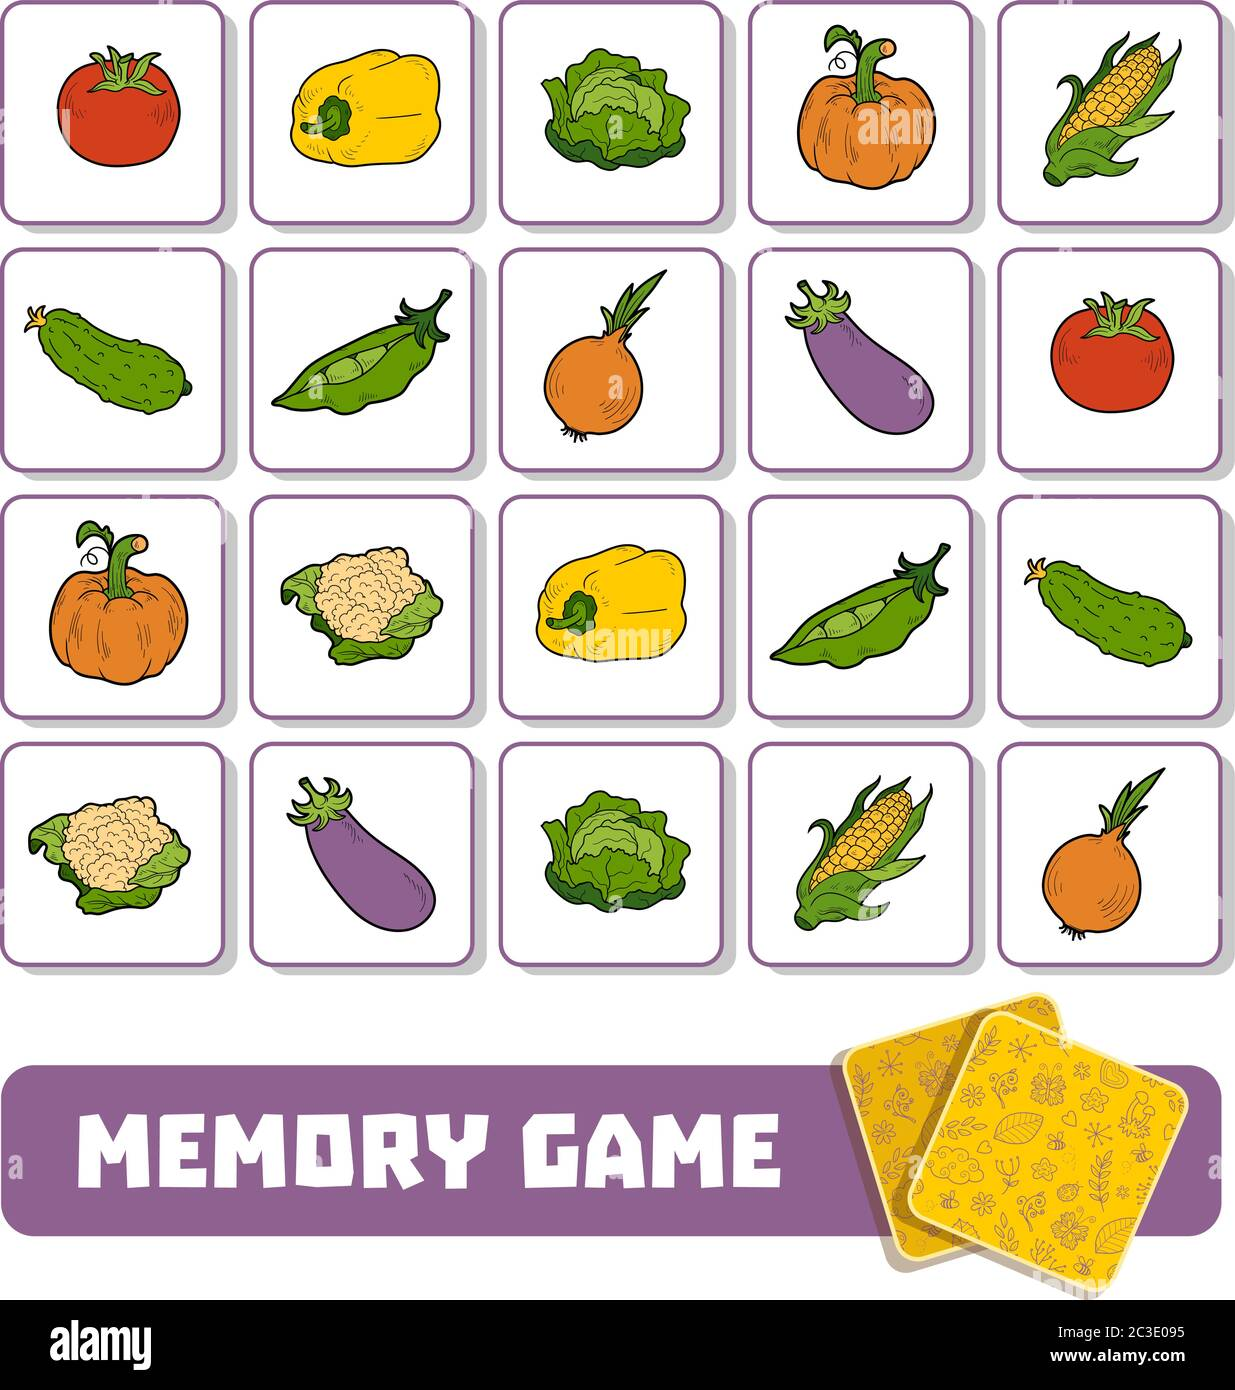 Memory Game For Preschool Children Vector Cards With